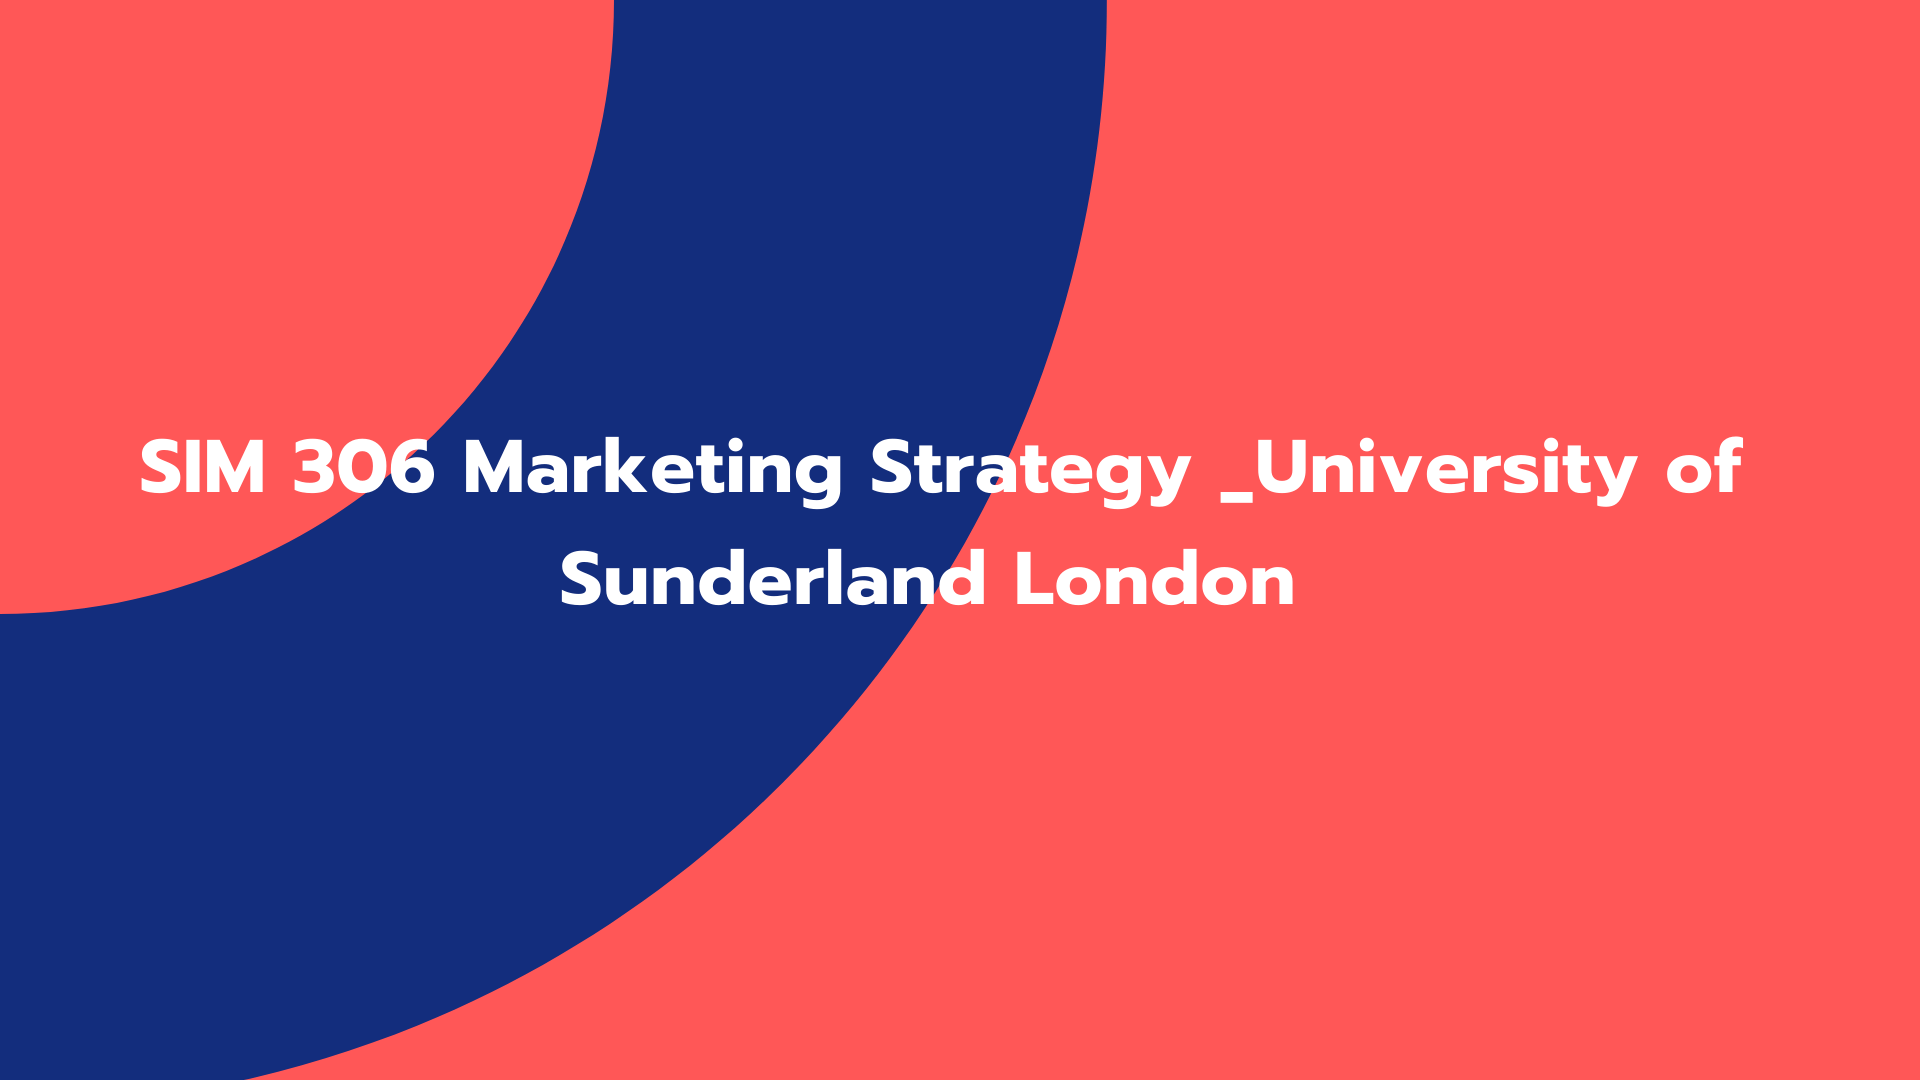 SIM 306 Marketing Strategy _University of Sunderland London